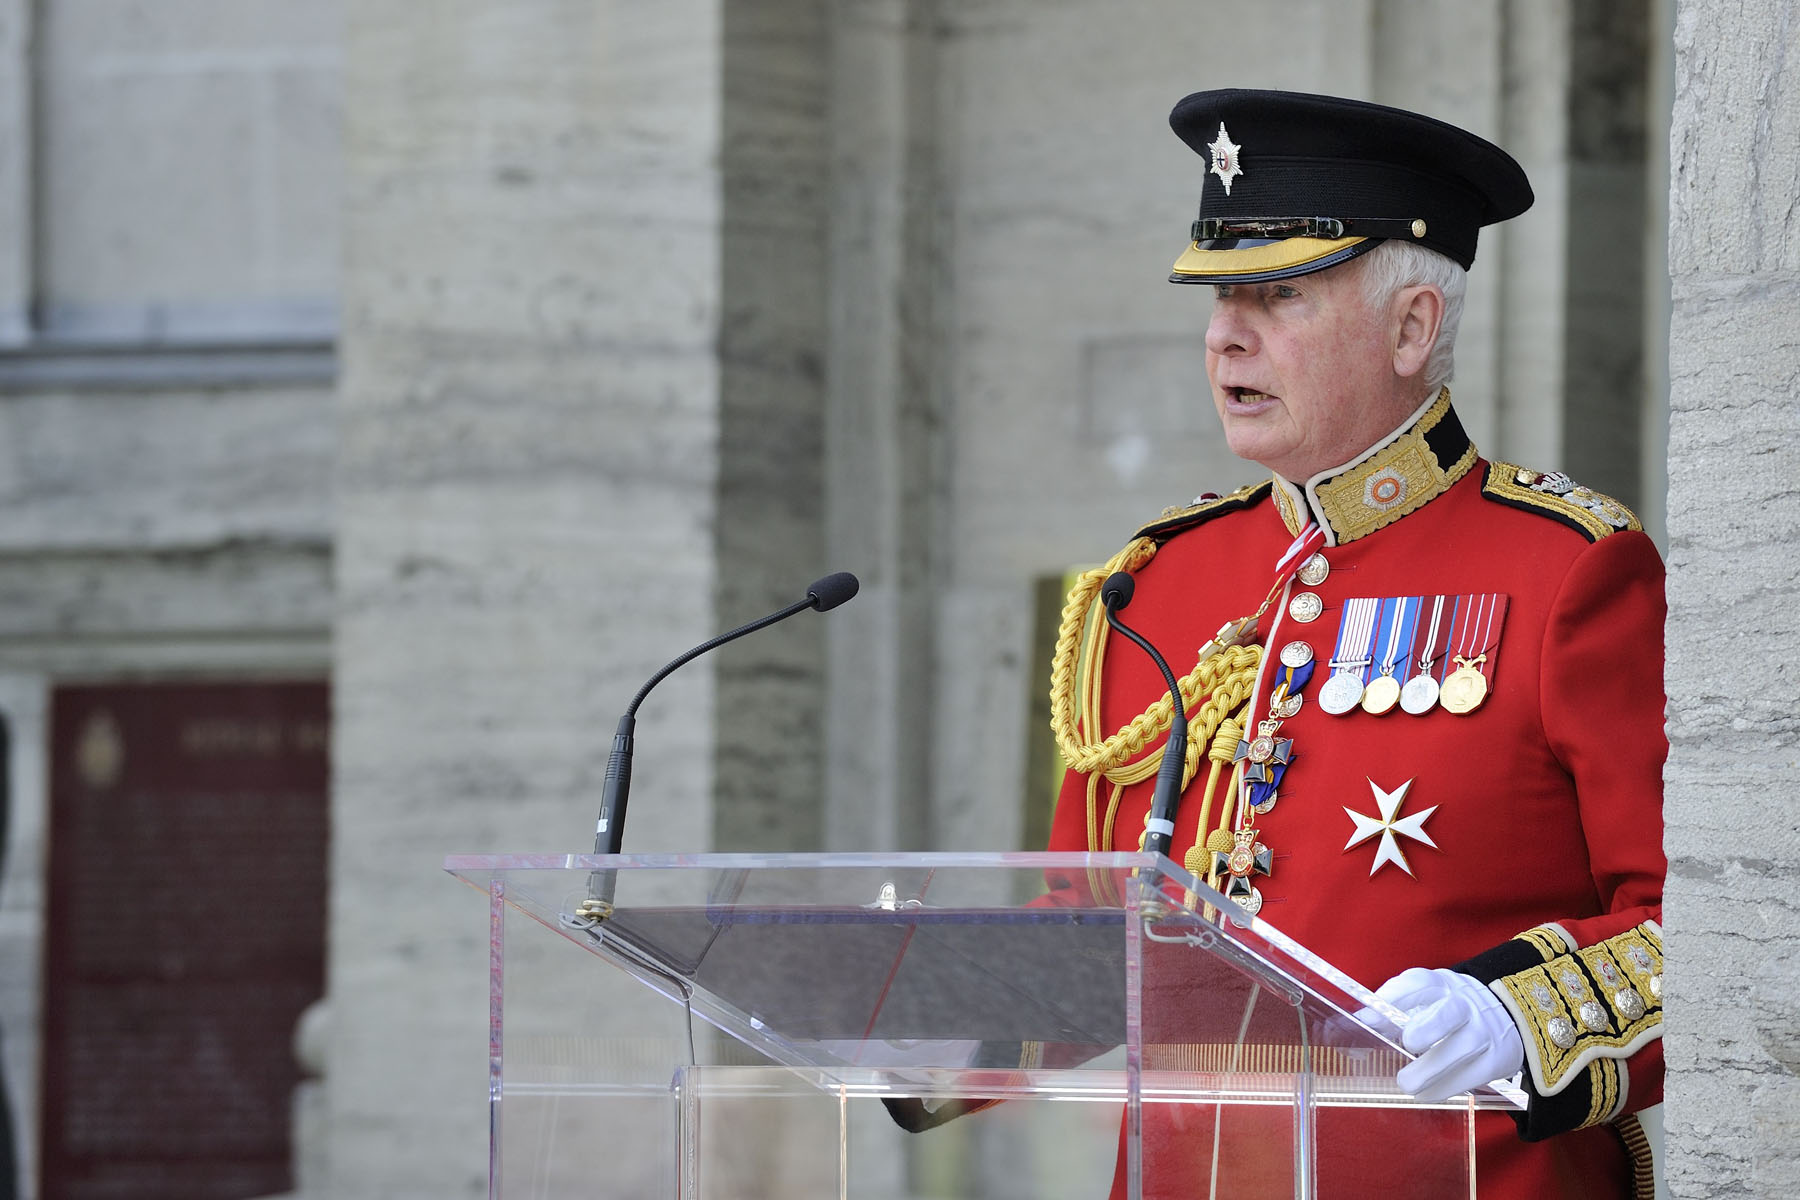 """You are part of a strong tradition of service to Canada. Every aspect of your dress and deportment exudes Canadian heritage and history, and through you, we see an image of ourselves and of our country. As commander-in-chief of Canada, I am proud to wear the uniform and to serve as colonel of two of the regiments that form your ranks: the Canadian Grenadier Guards and the Governor General's Foot Guards."""